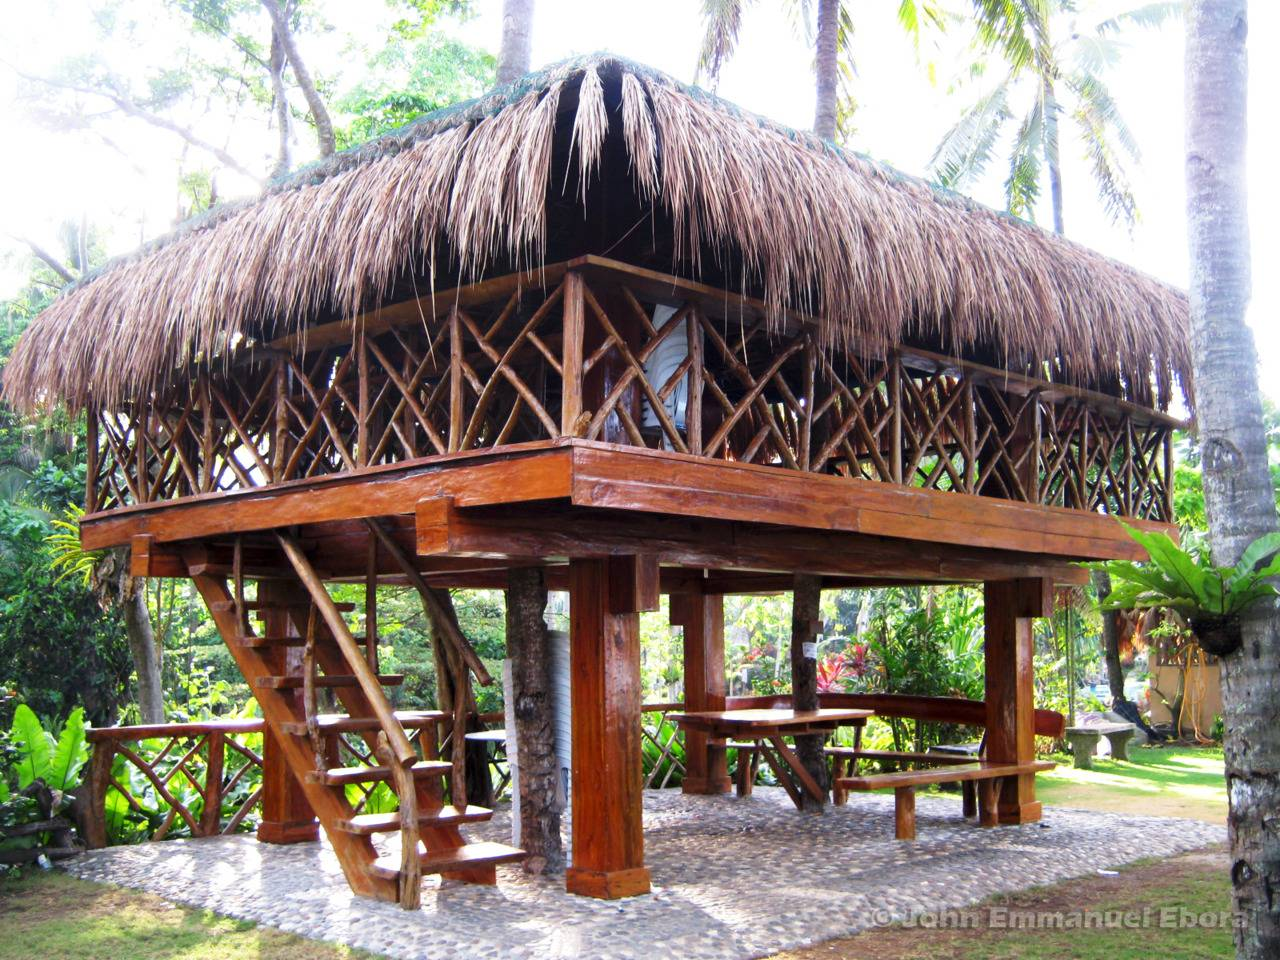 45040814 further Bamboo House Design moreover Bamboo Houses Interior And Exterior Designs as well Modern Nipa Hut Designs Joy Studio Design Best 2 moreover Bahay Kubo Modern. on hut nipa house design philippines